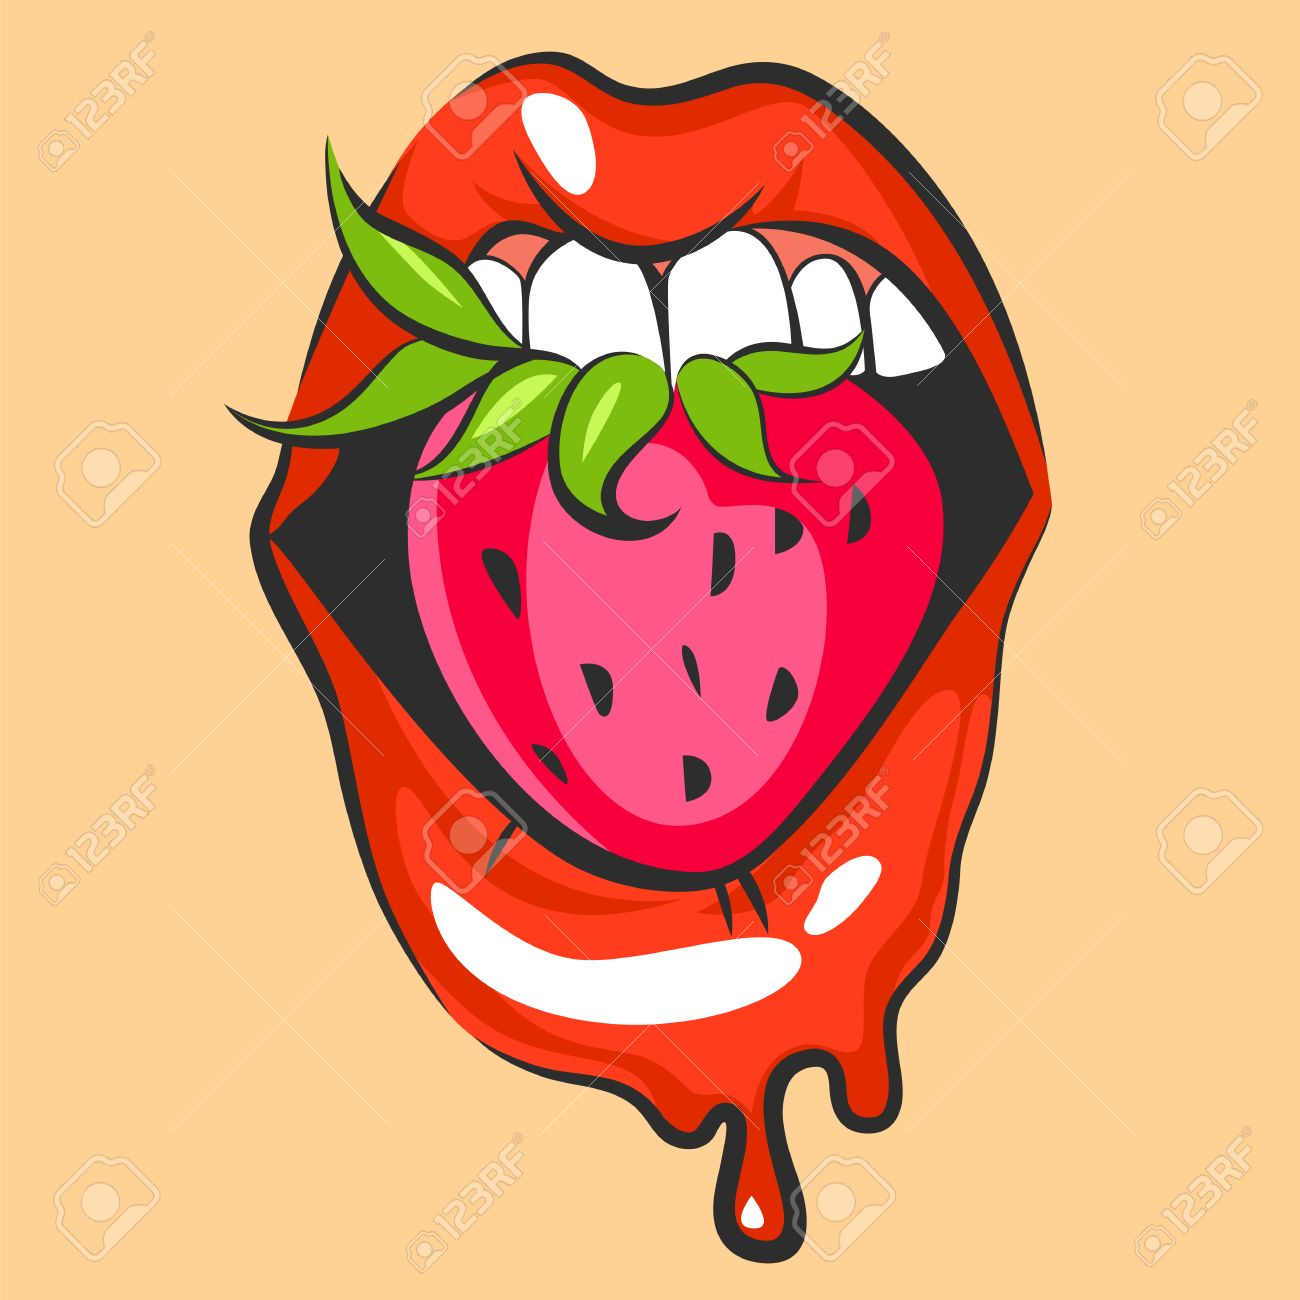 Sexy Lips With Sweet Strawberry Pop Art Mouth Biting Pink Berry Royalty Free Cliparts Vectors And Stock Illustration Image 67963658